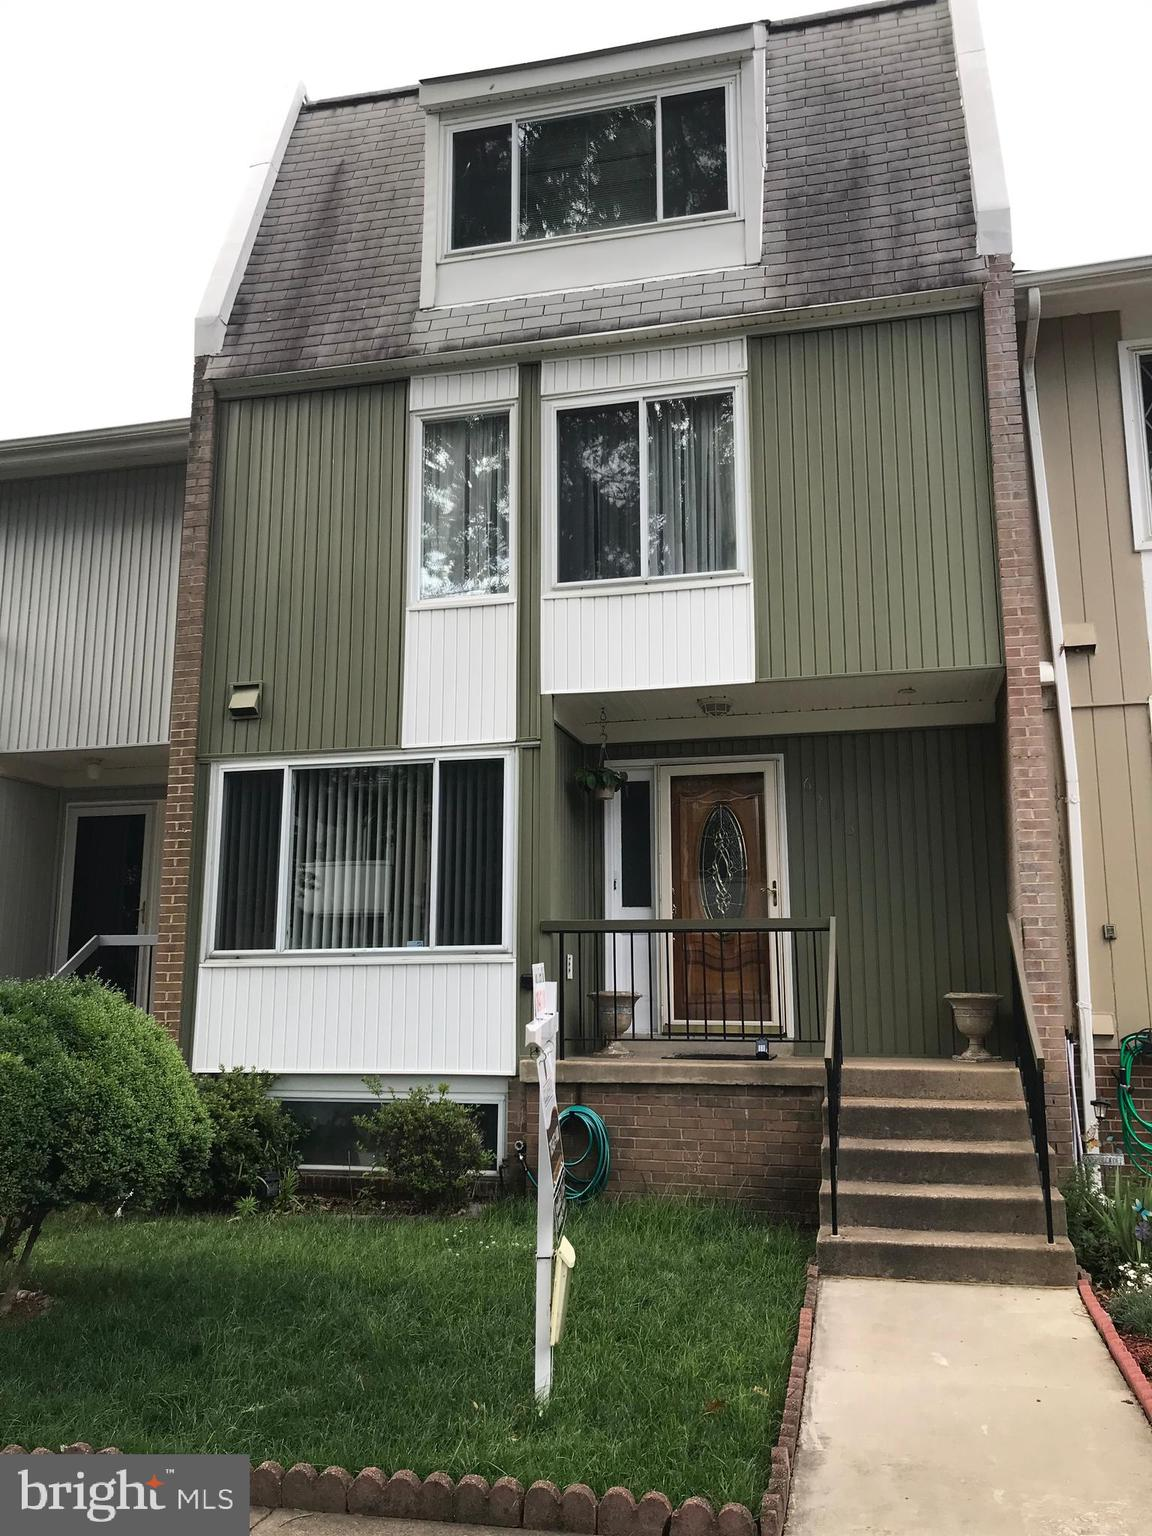 Very rare 4 story Townhouse 4 bed 3.5 bath in top condition.Near Metro and shopping center, close to public transportation.Walk out basement/outside entrance.Harwood floor in kitchen and granite counter, family floor tile. Rear brick patio, deck from living room, proud of ownership.Owner to find HOC,please show and sell.FRIENDLY SMALL DOG.Chandeliers in living room and main bedroom does not convey. Refrigerator in basement does not convey.